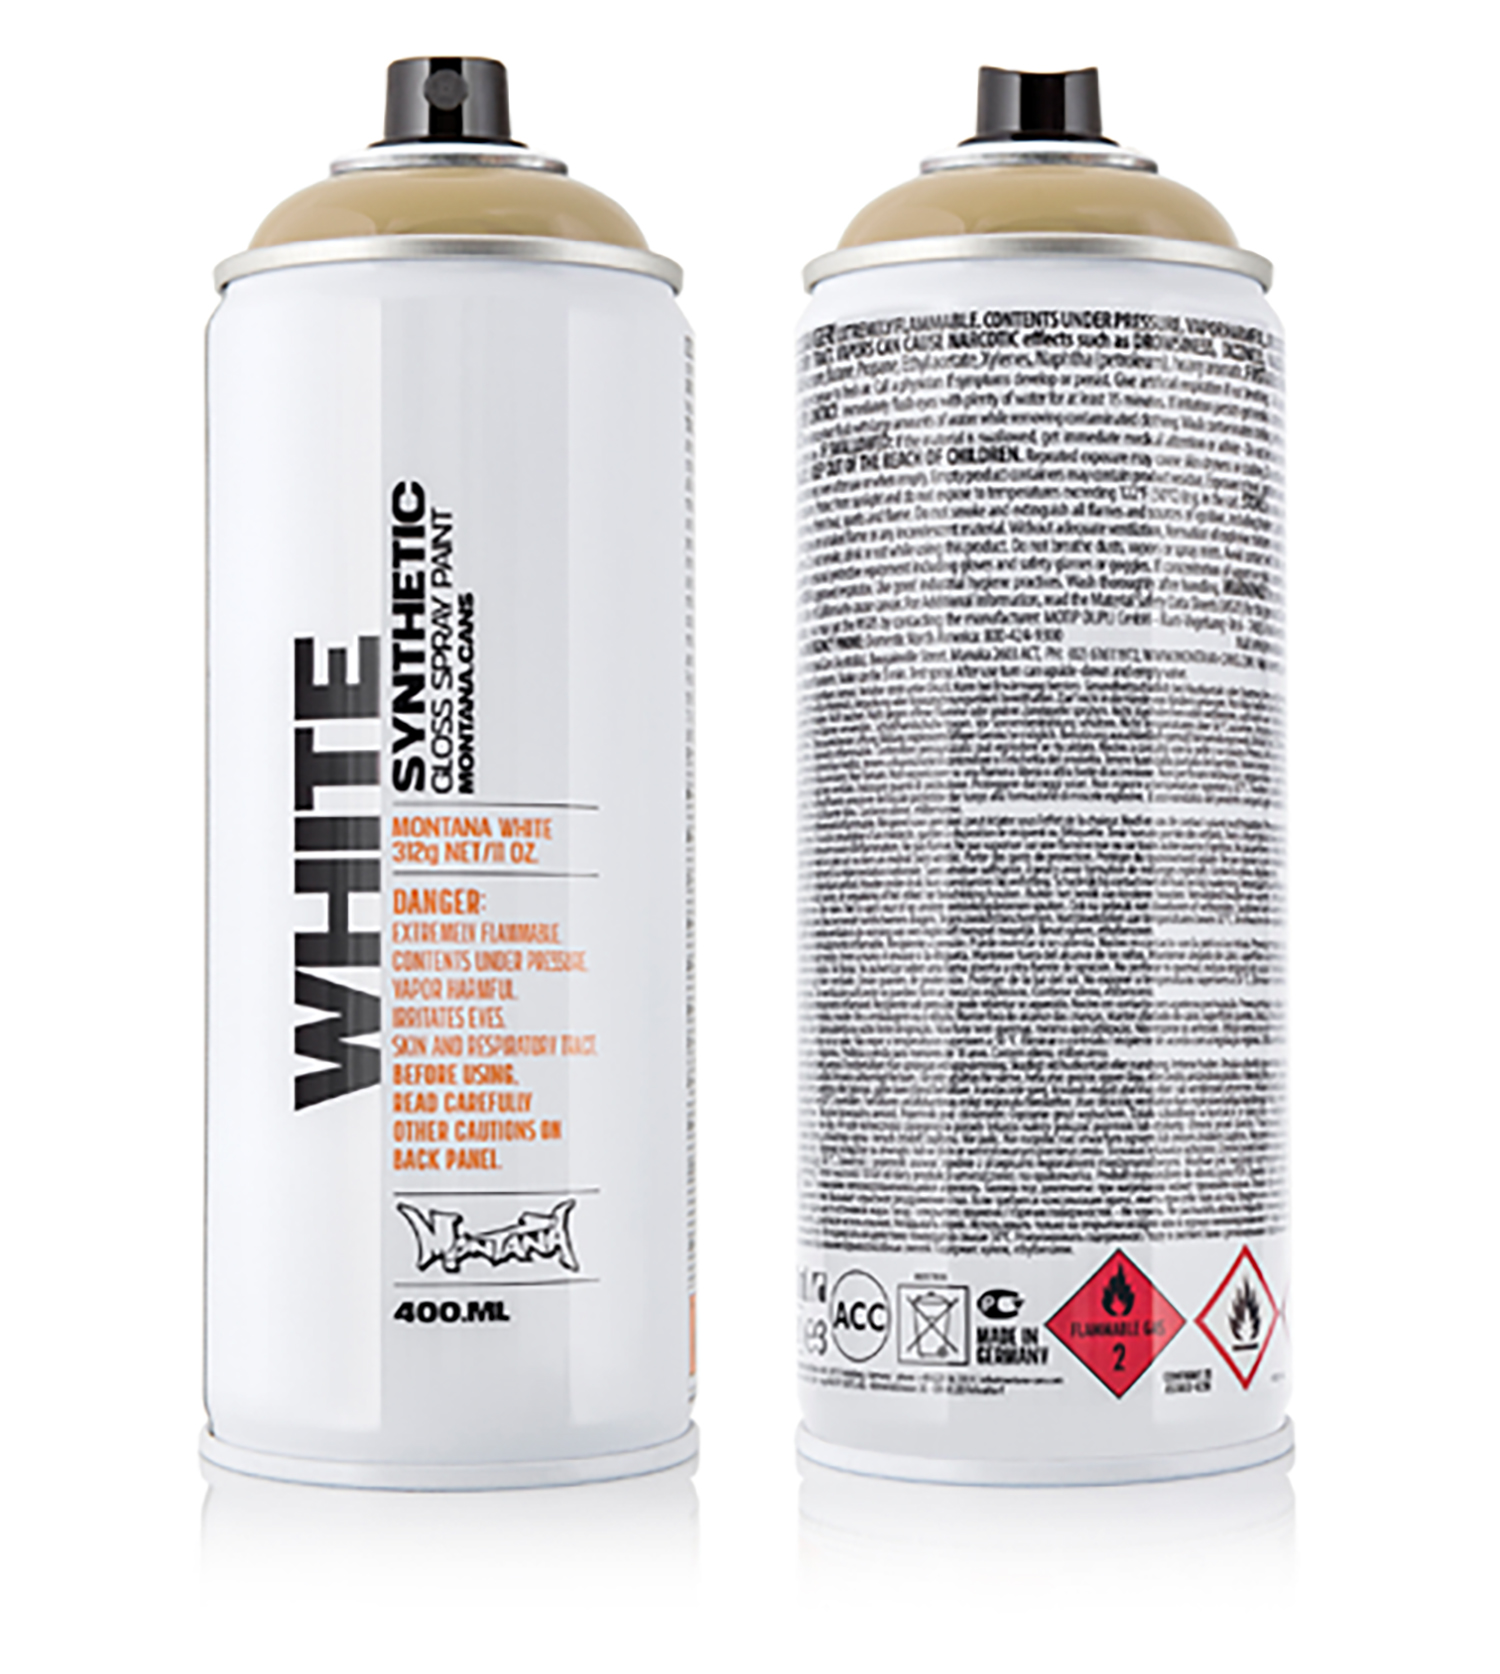 MONTANA-WHITE-SPRAY-400ML-7020